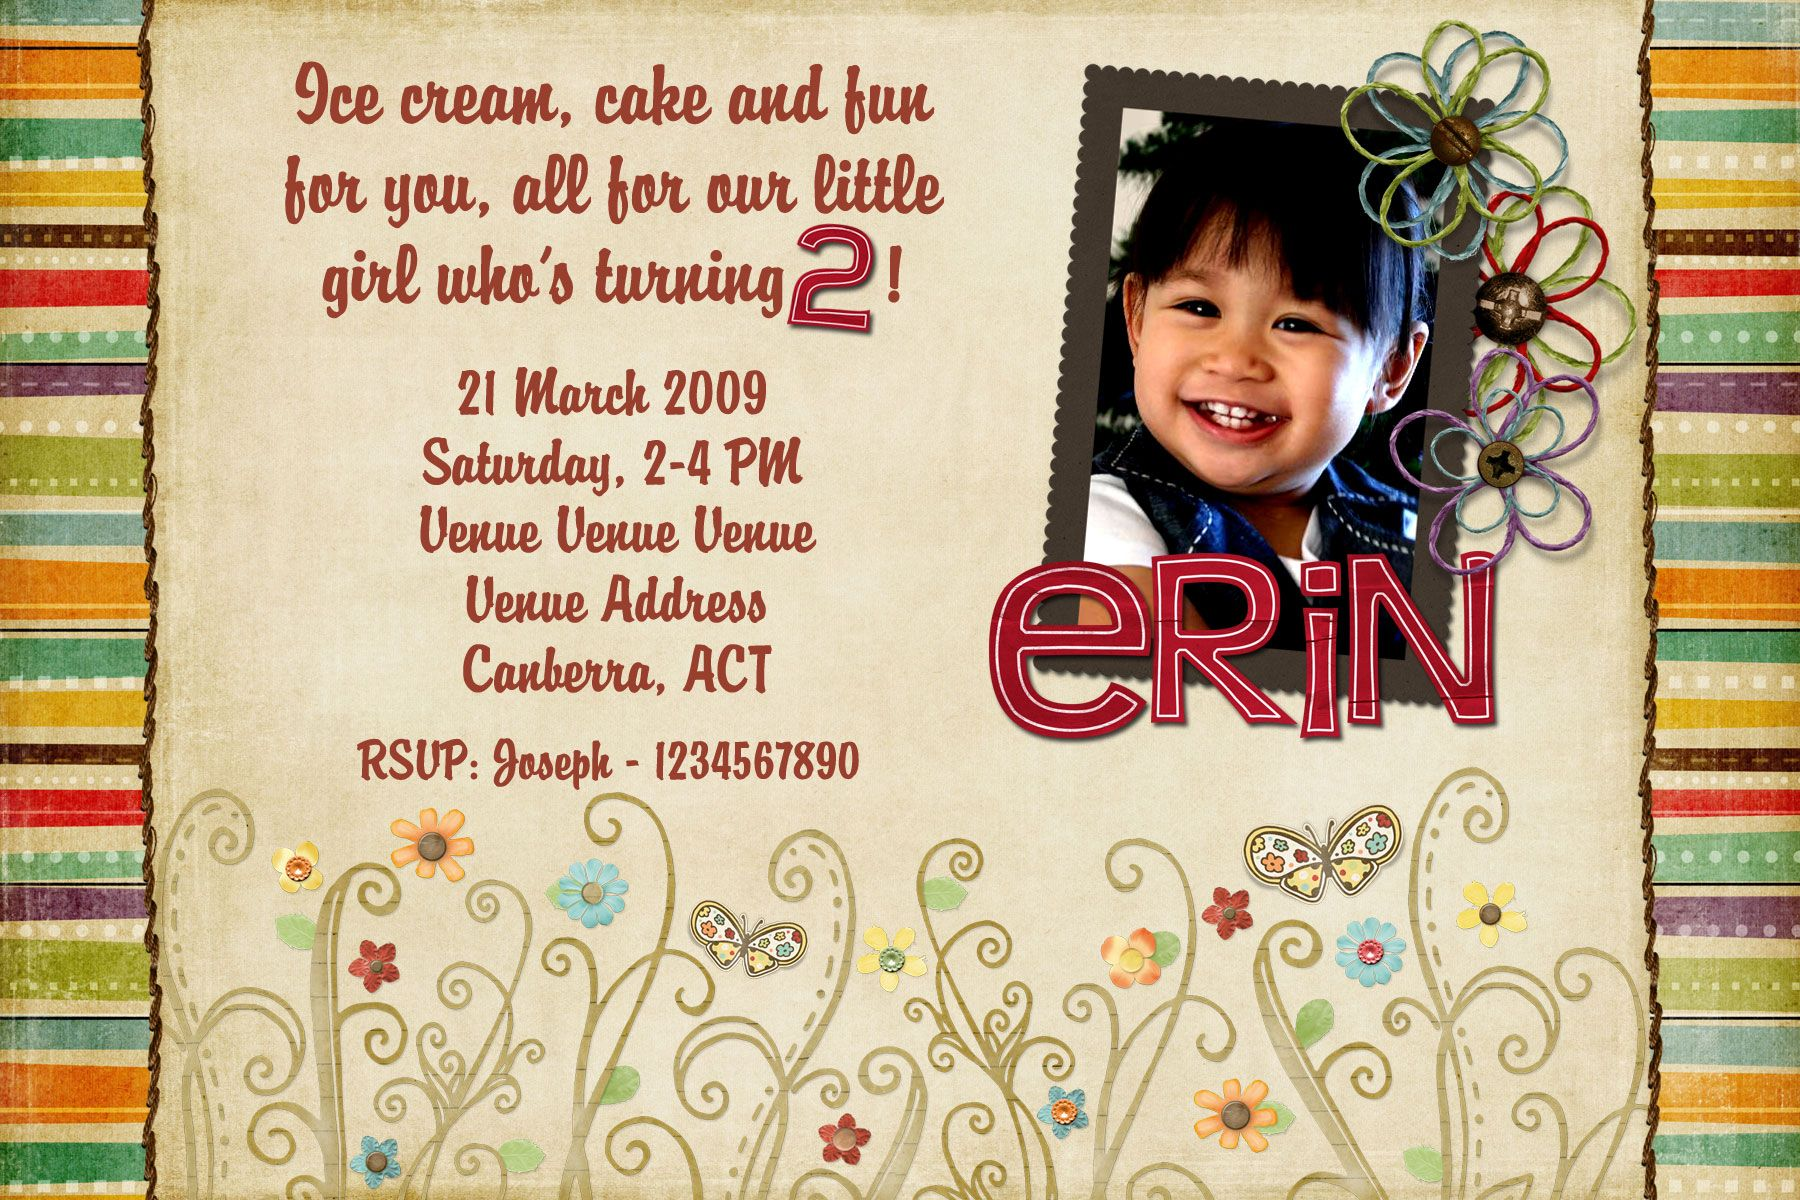 Get 2 Year Old Birthday Invitations Download This Invitation For FREE At